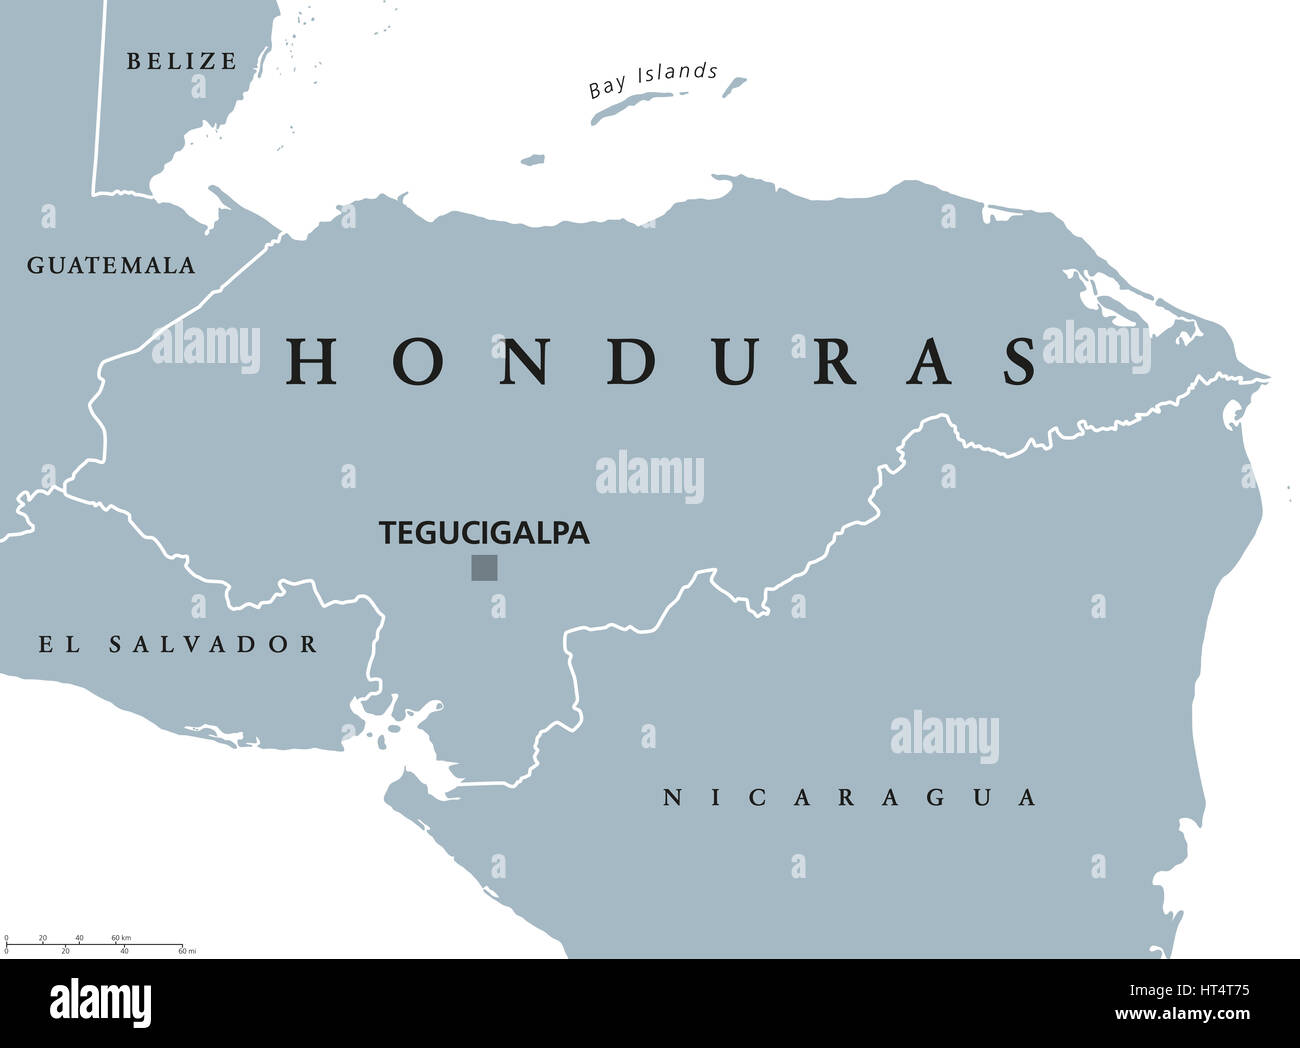 Honduras political map with capital tegucigalpa national borders honduras political map with capital tegucigalpa national borders and neighbors republic and country in central america spanish honduras gray illus gumiabroncs Image collections